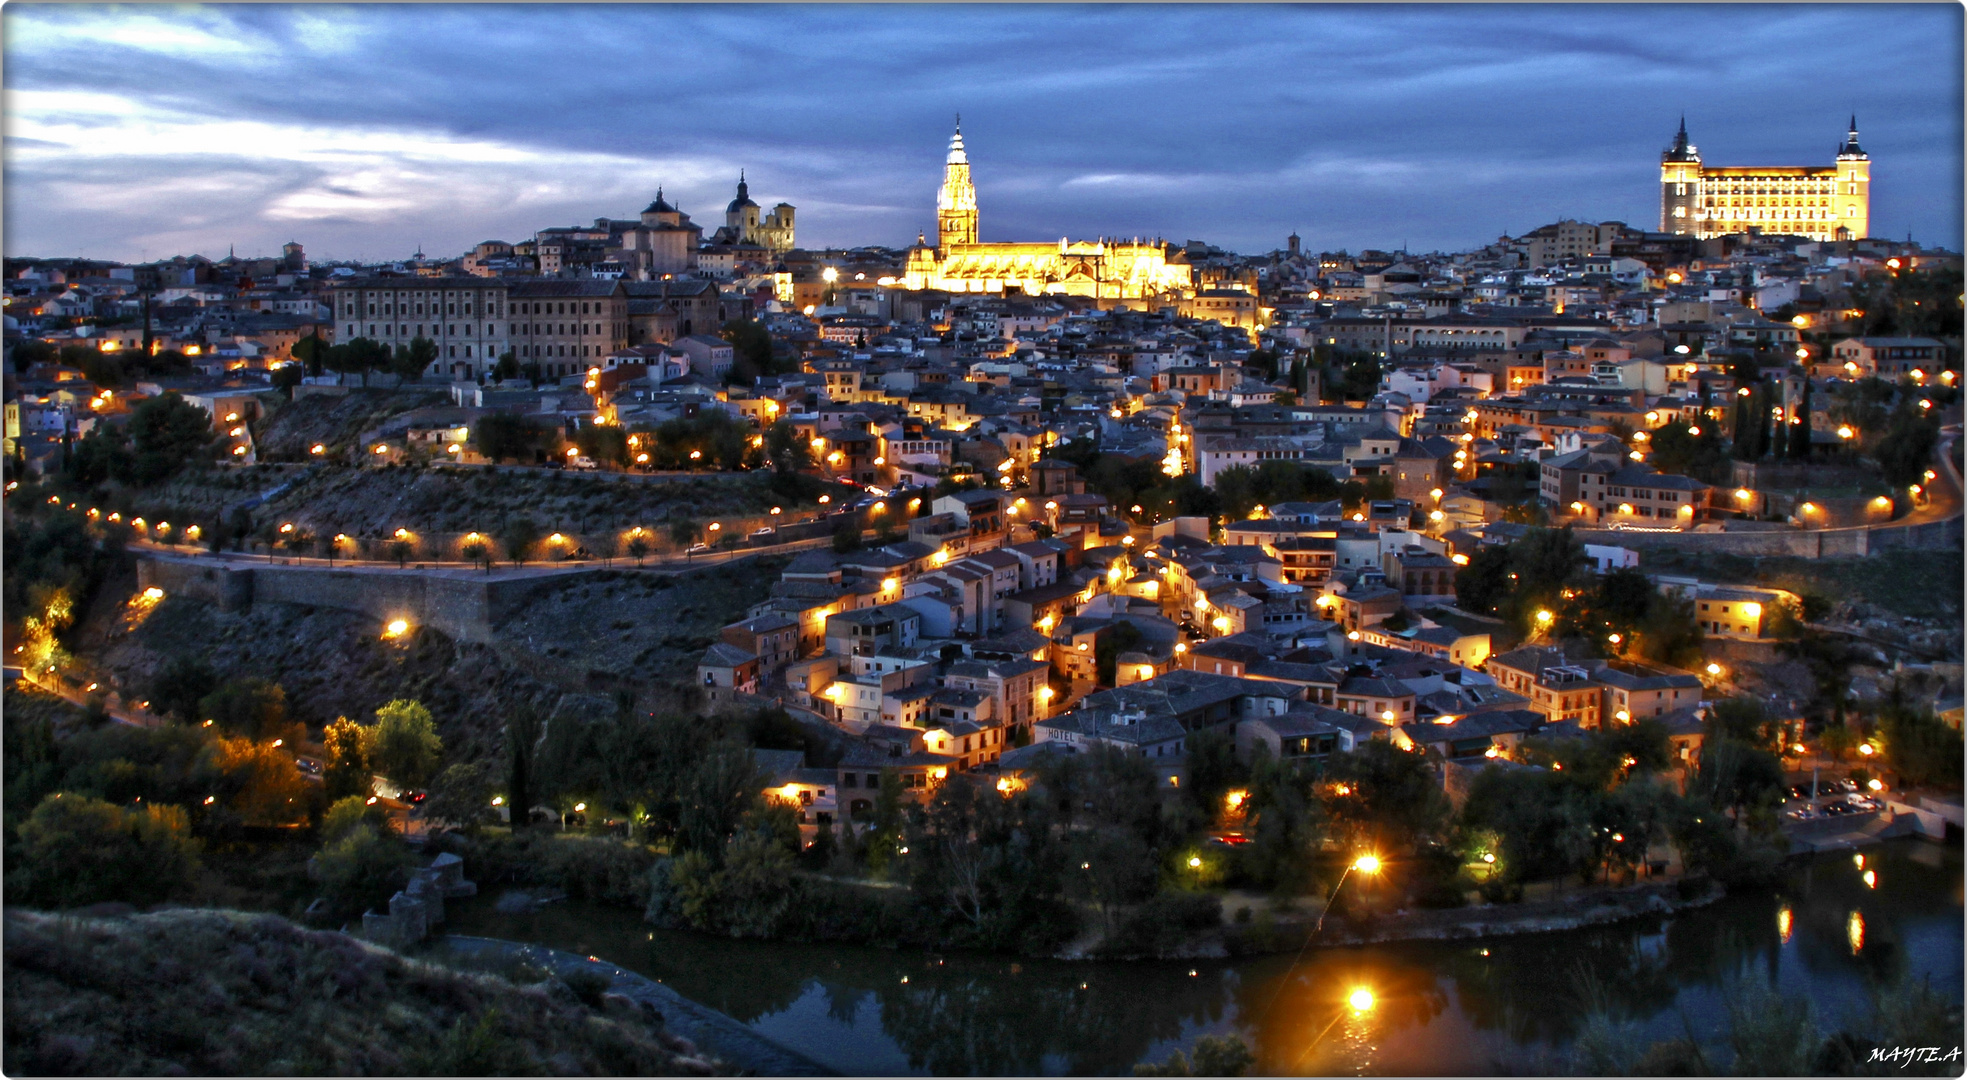 Toledo at night.